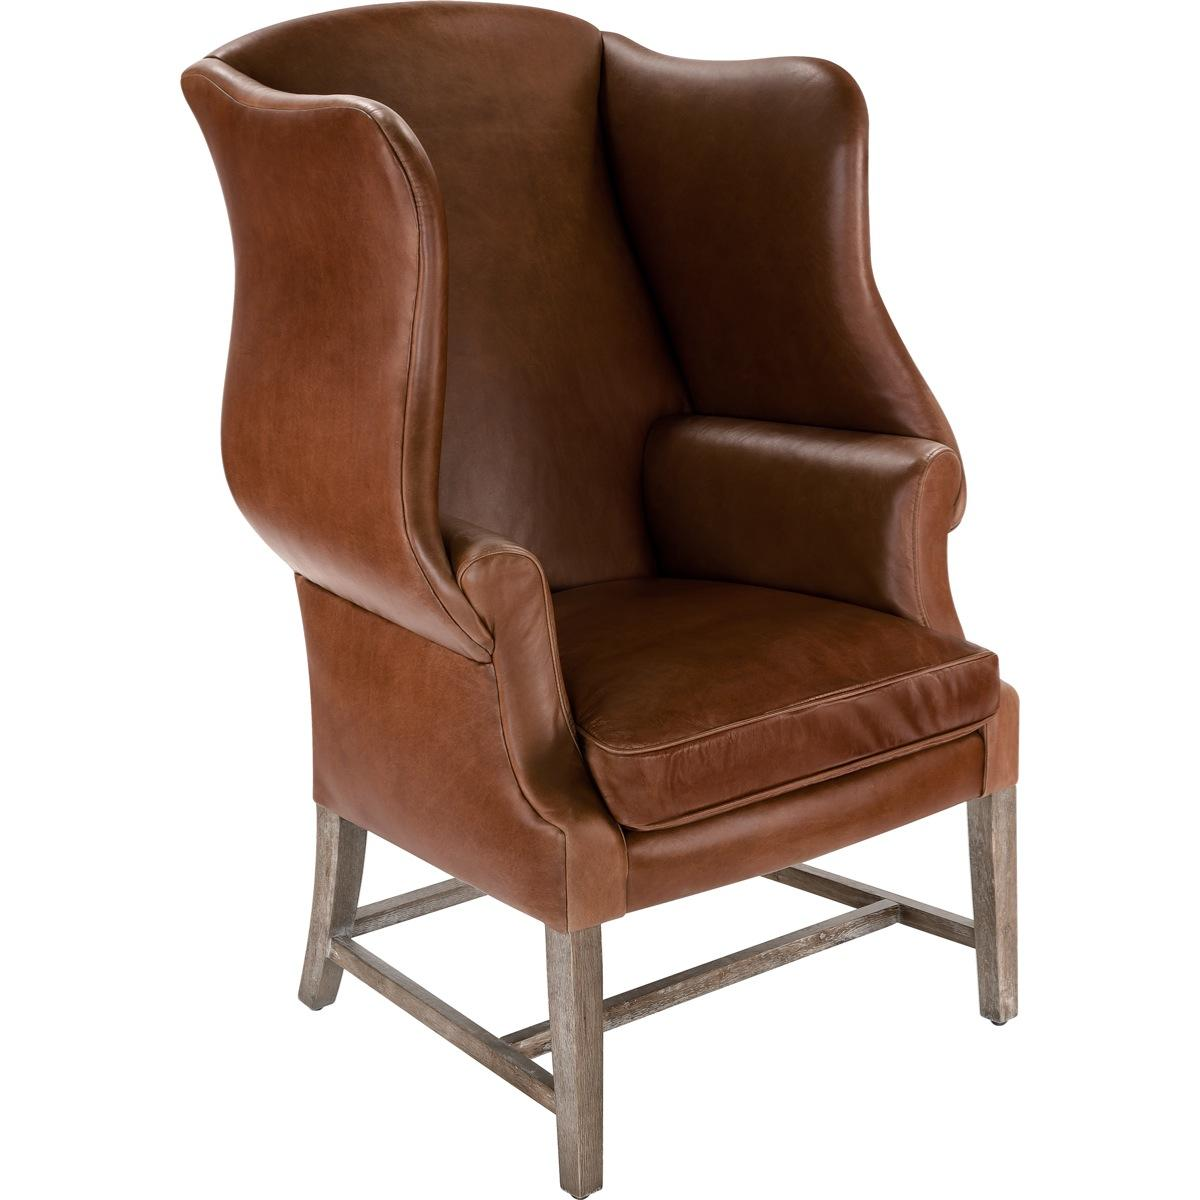 a tribute to the staying power of chippendale style the fay wing chair is replete with gracefully curved wing arms and comfy box cushion